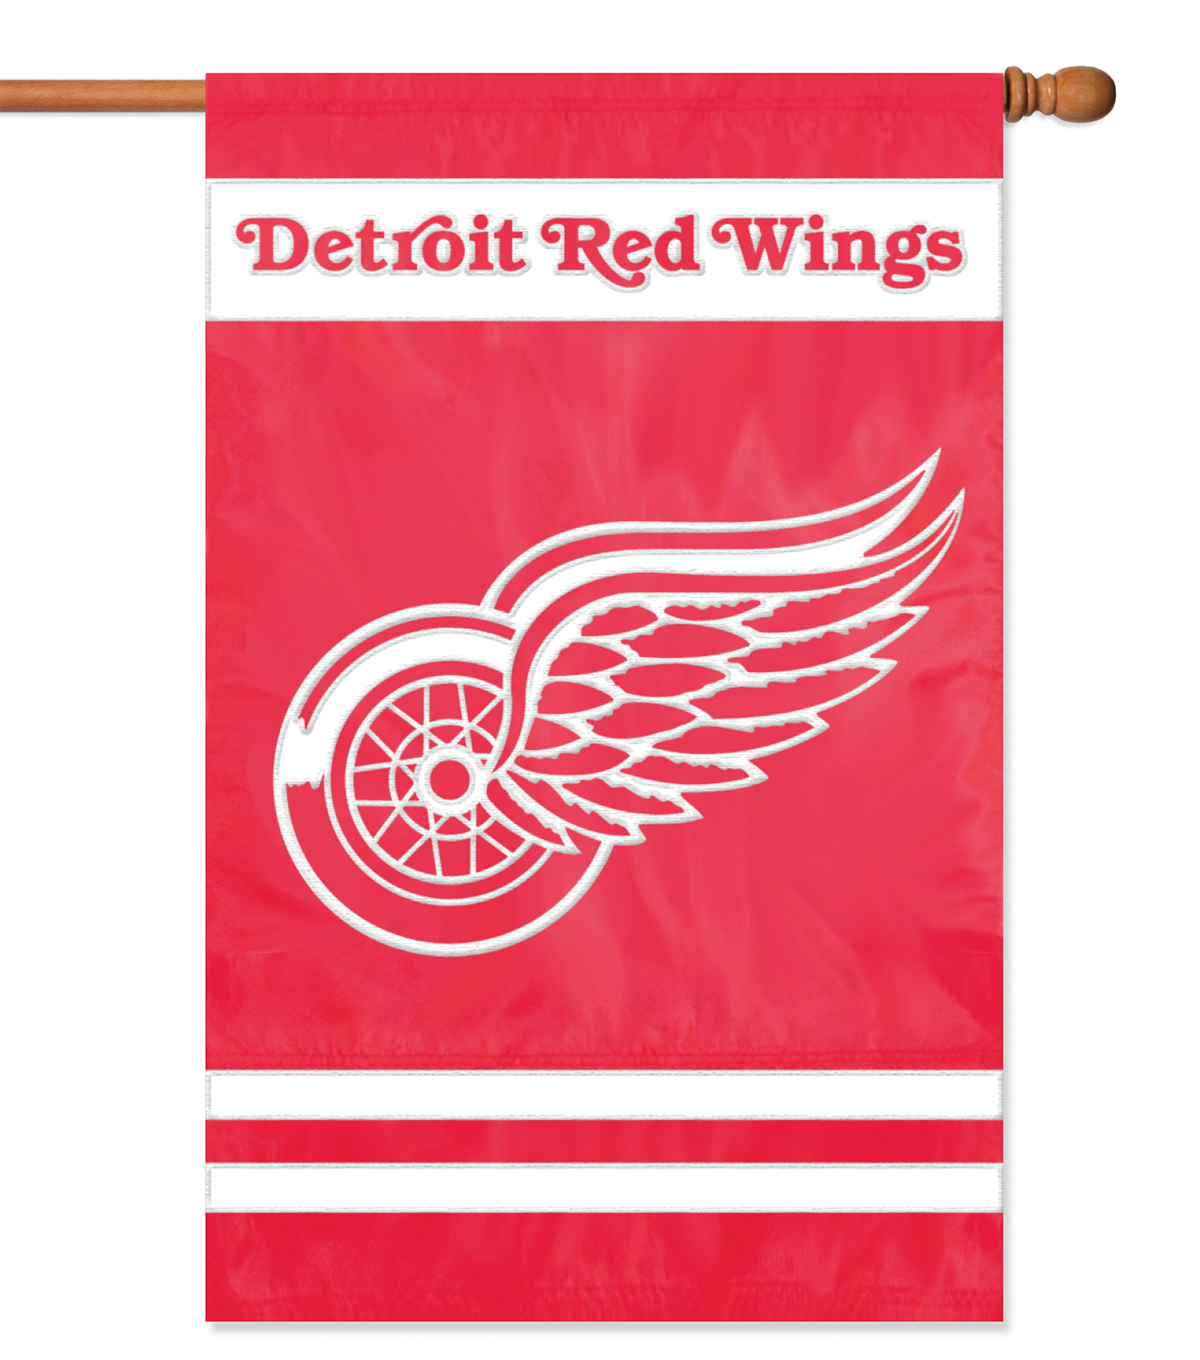 Detroit Red Wings Applique Banner Flag